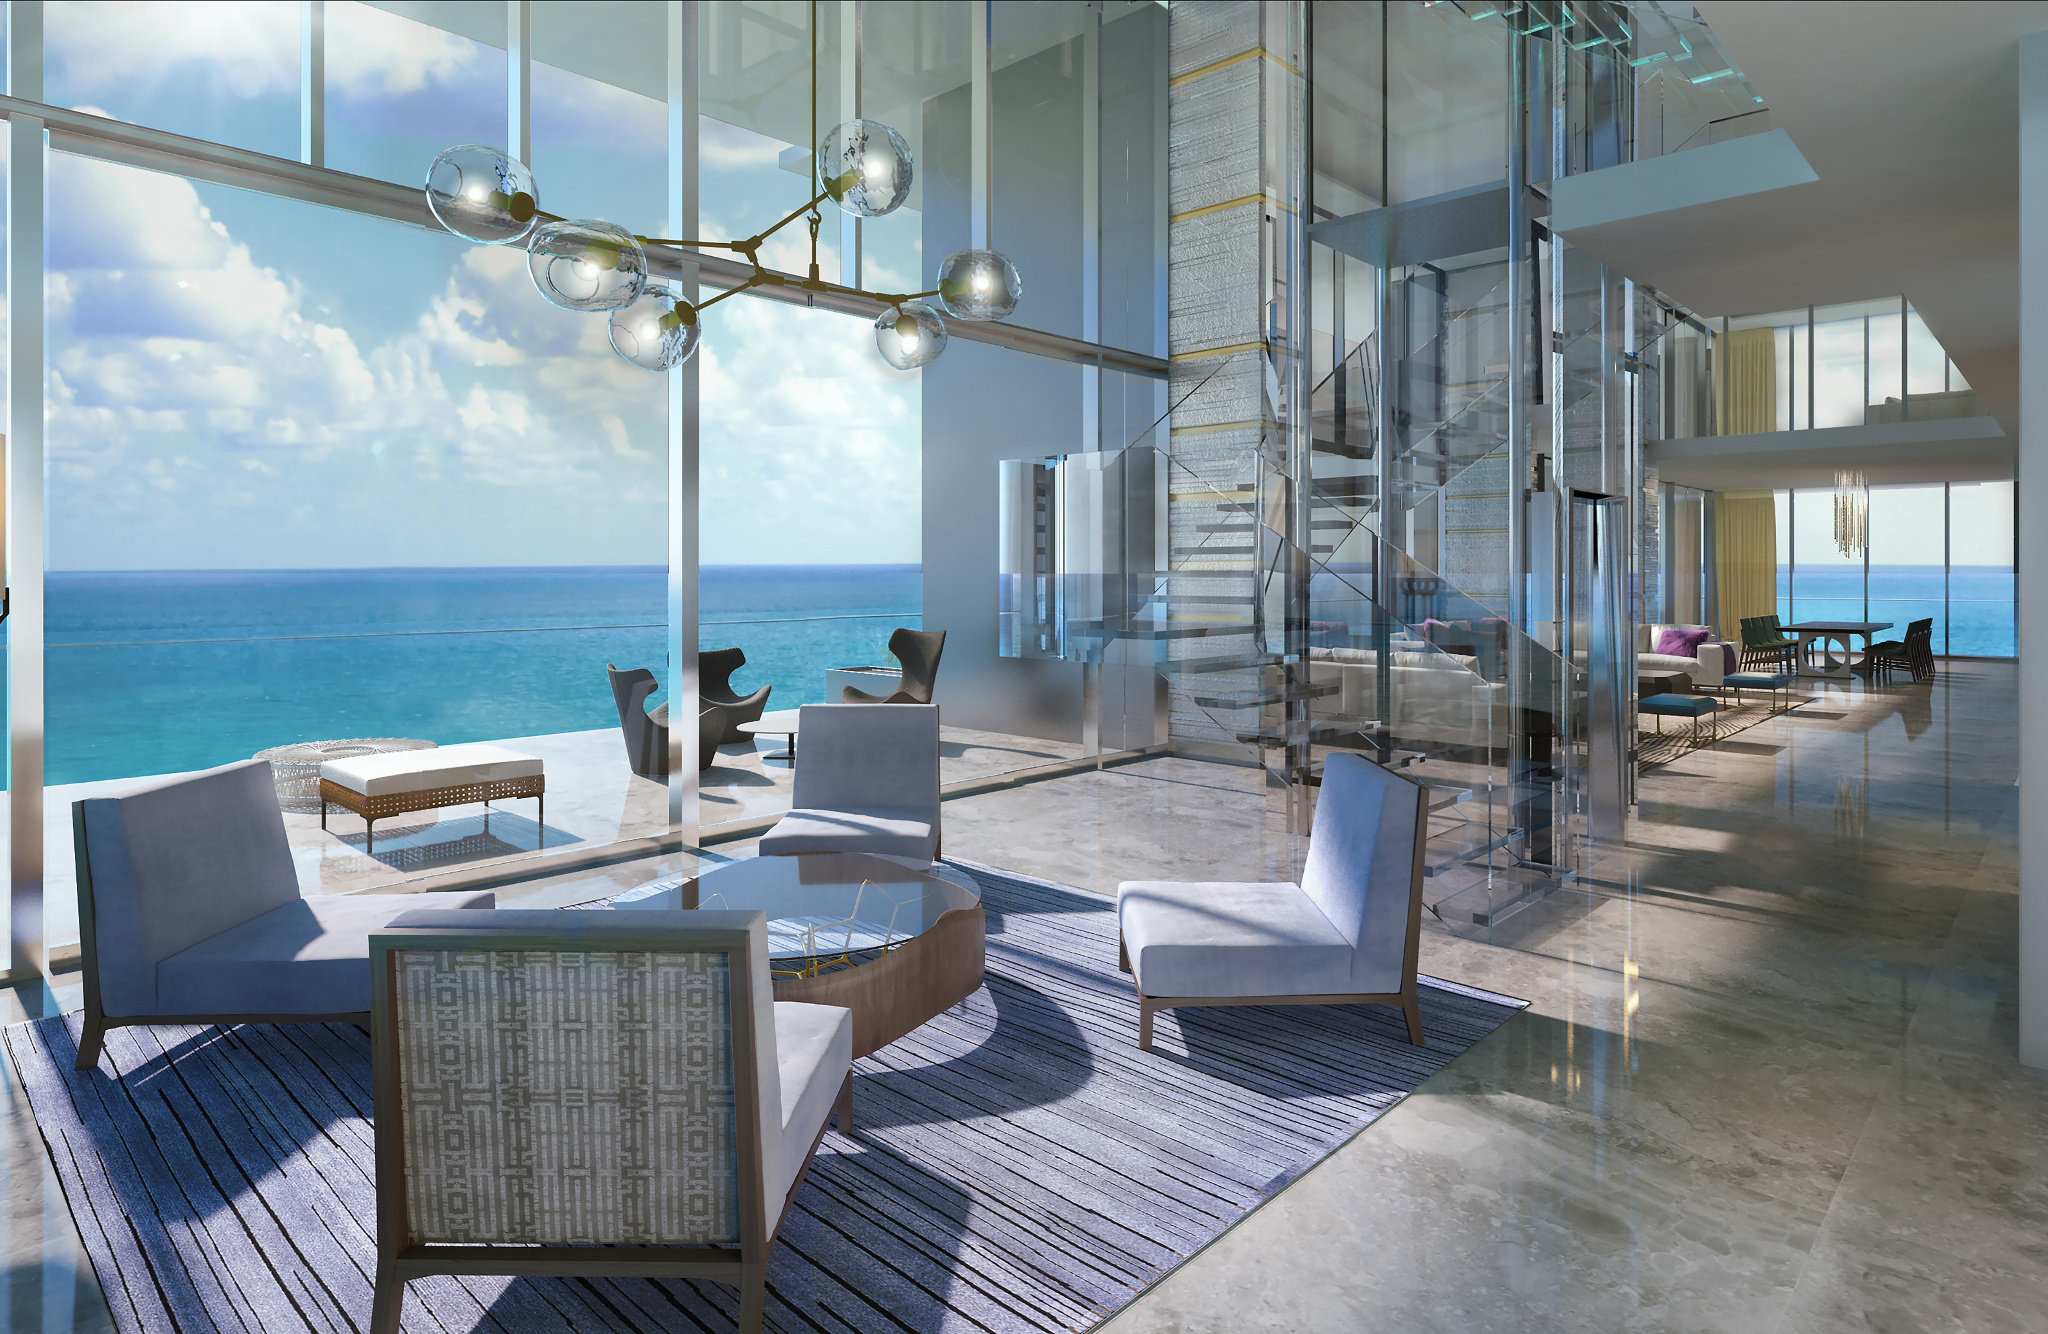 Penthouse at L'Atelier Residences, Miami Beach - Interiors